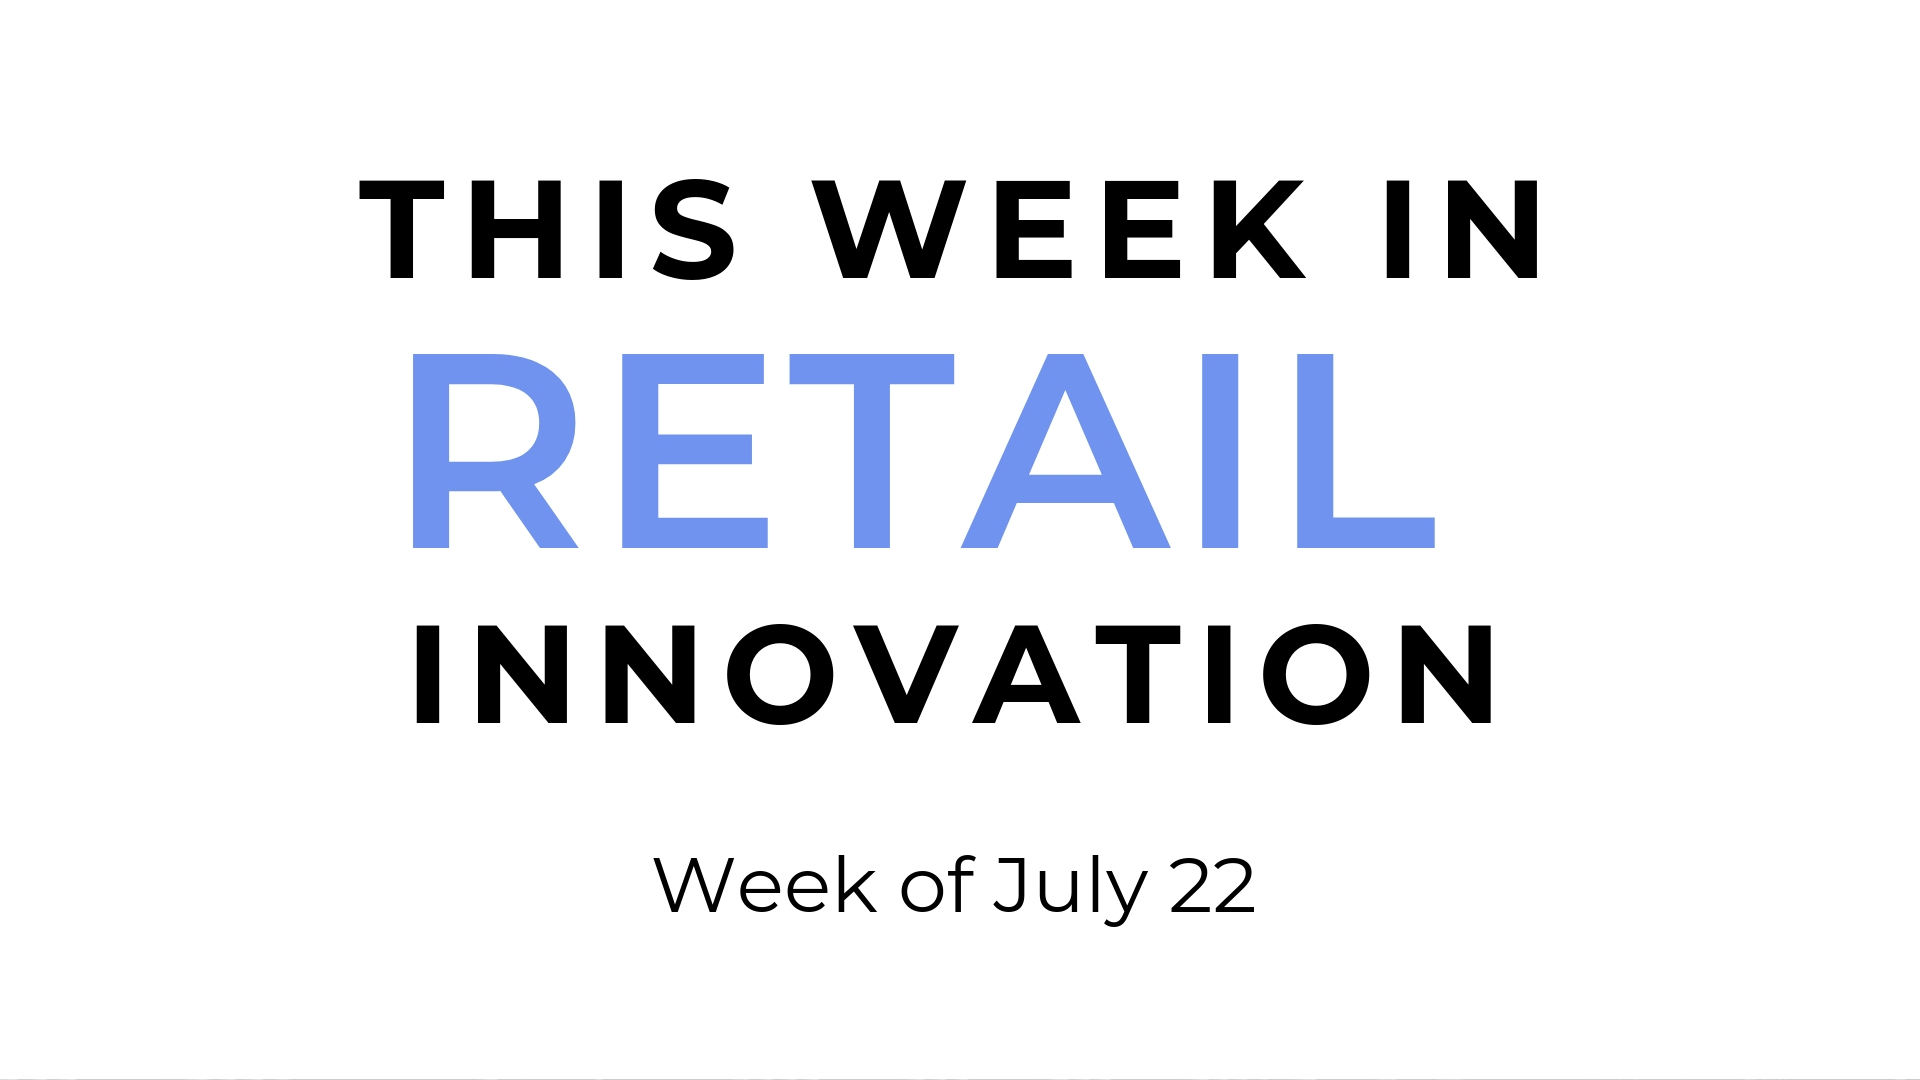 Perch_Content_This Week in Retail Innovation (1).jpg